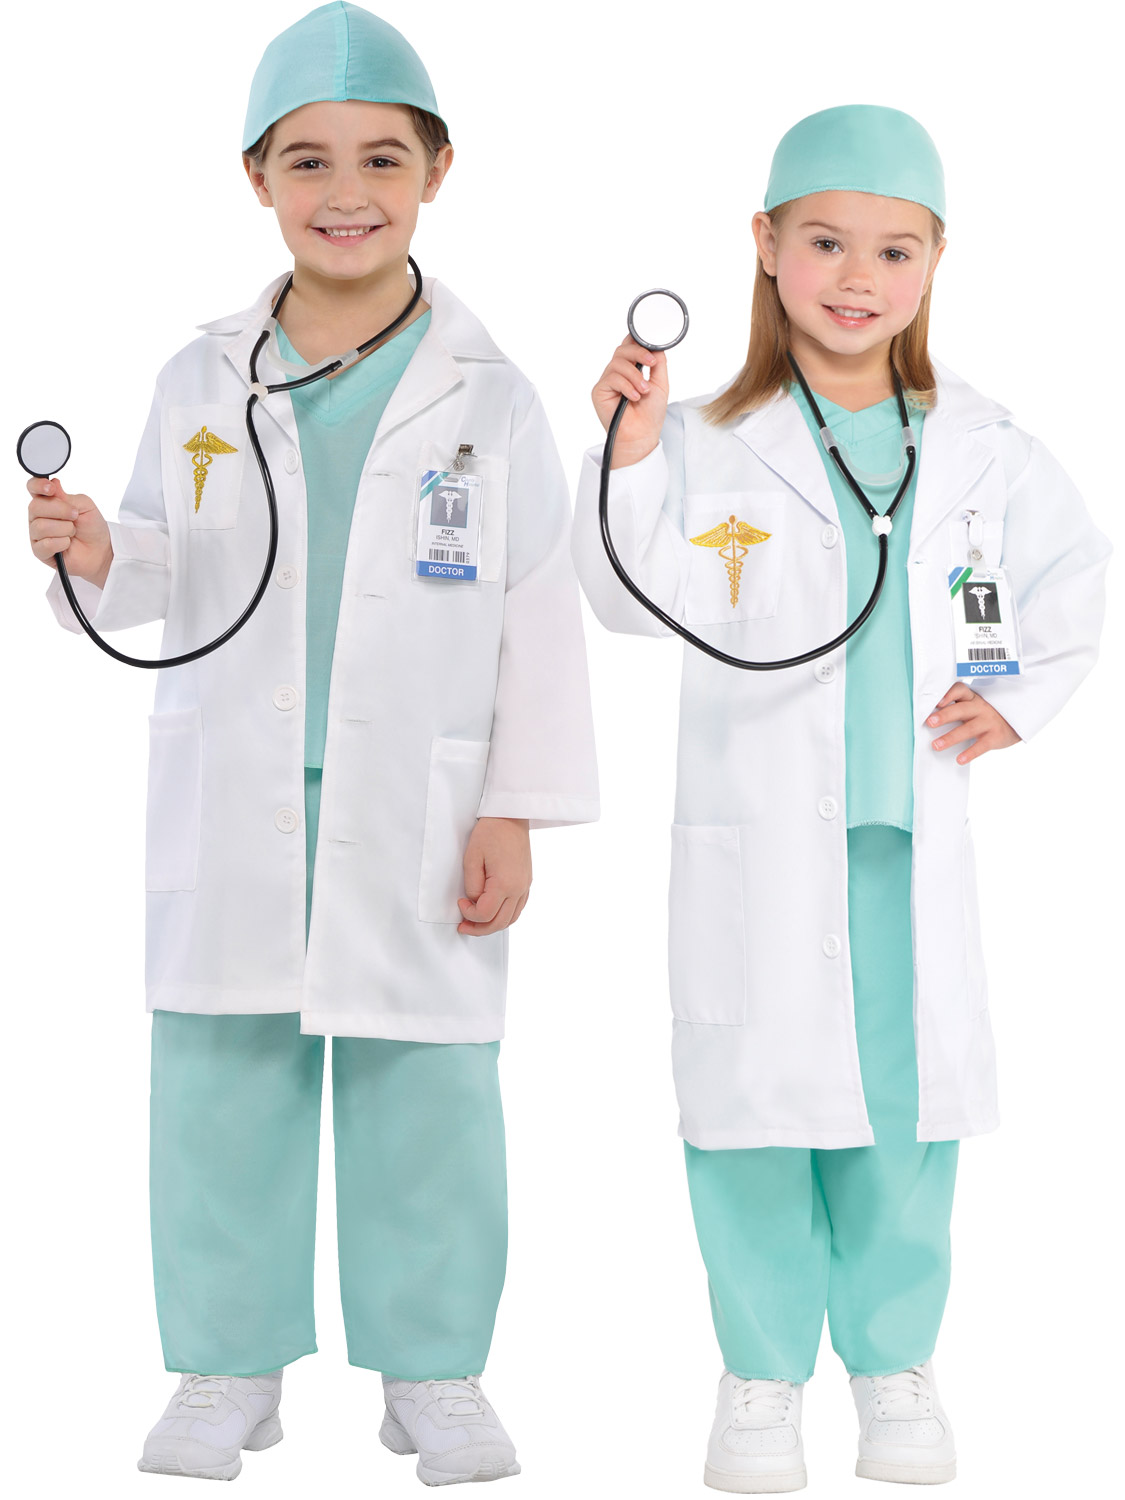 Child Surgeon Doctor Costume Boys Girls Scrubs Fancy Dress Kids Book Week Outfit